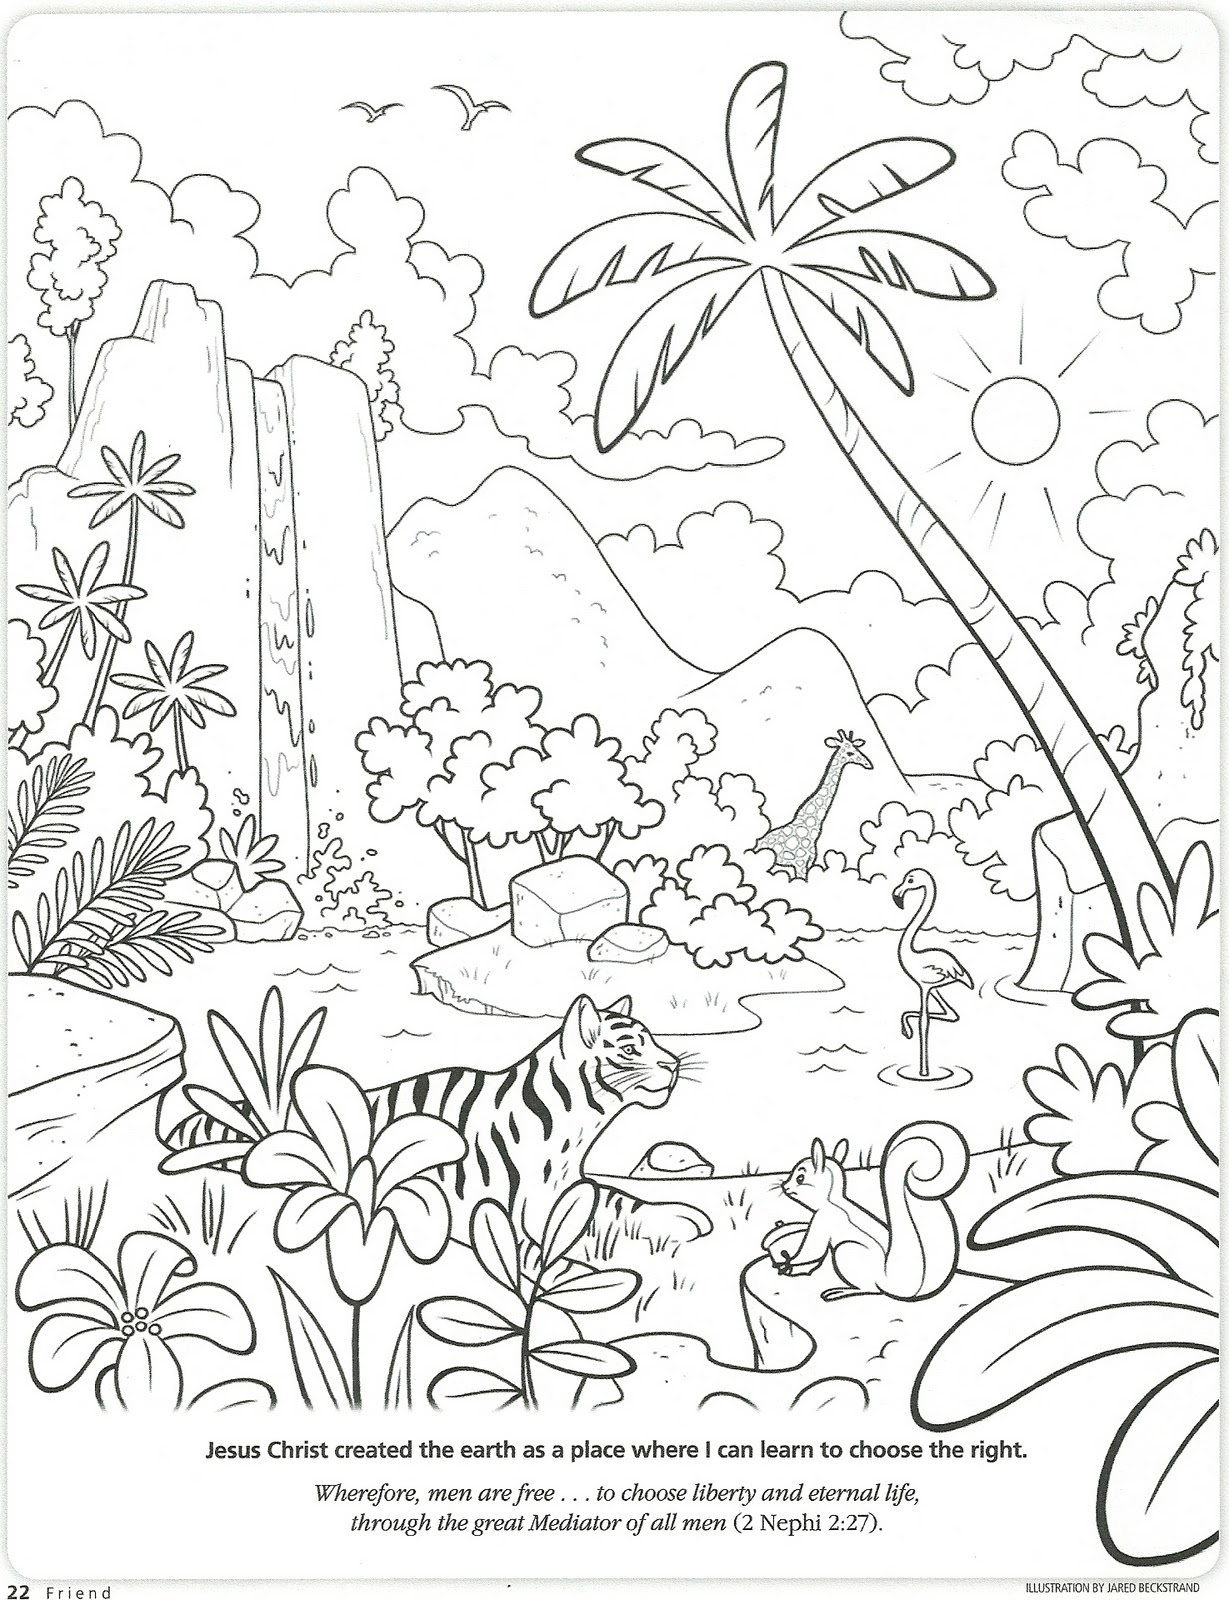 coloring page from december 2008 friend pdf file page 13 here print only page 13 - Choose The Right Coloring Page